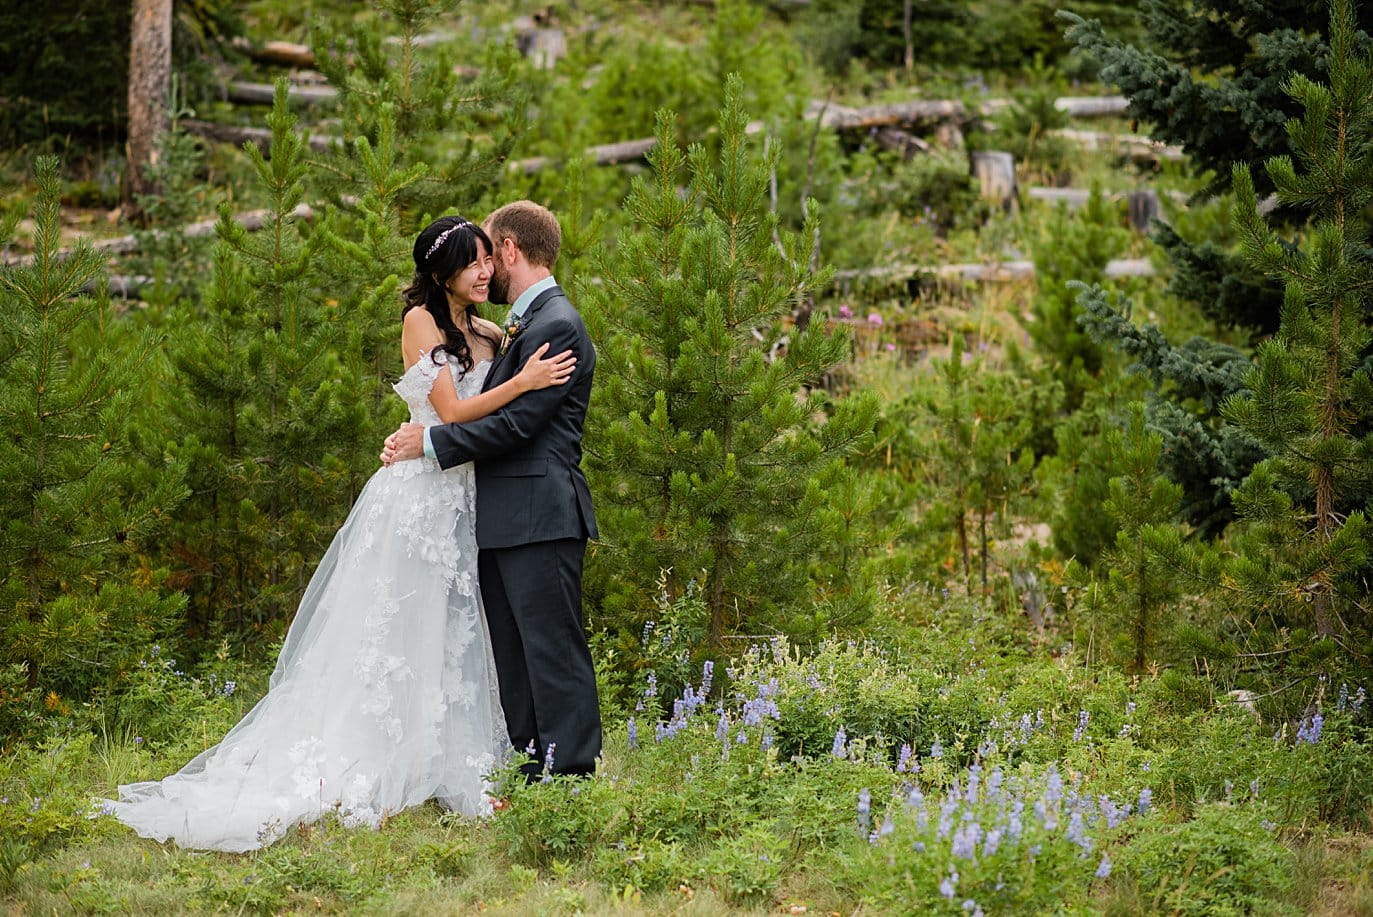 Emotional first look between bride and groom at intimate Grand Lake wedding by Grand Lake wedding photographer Jennie Crate